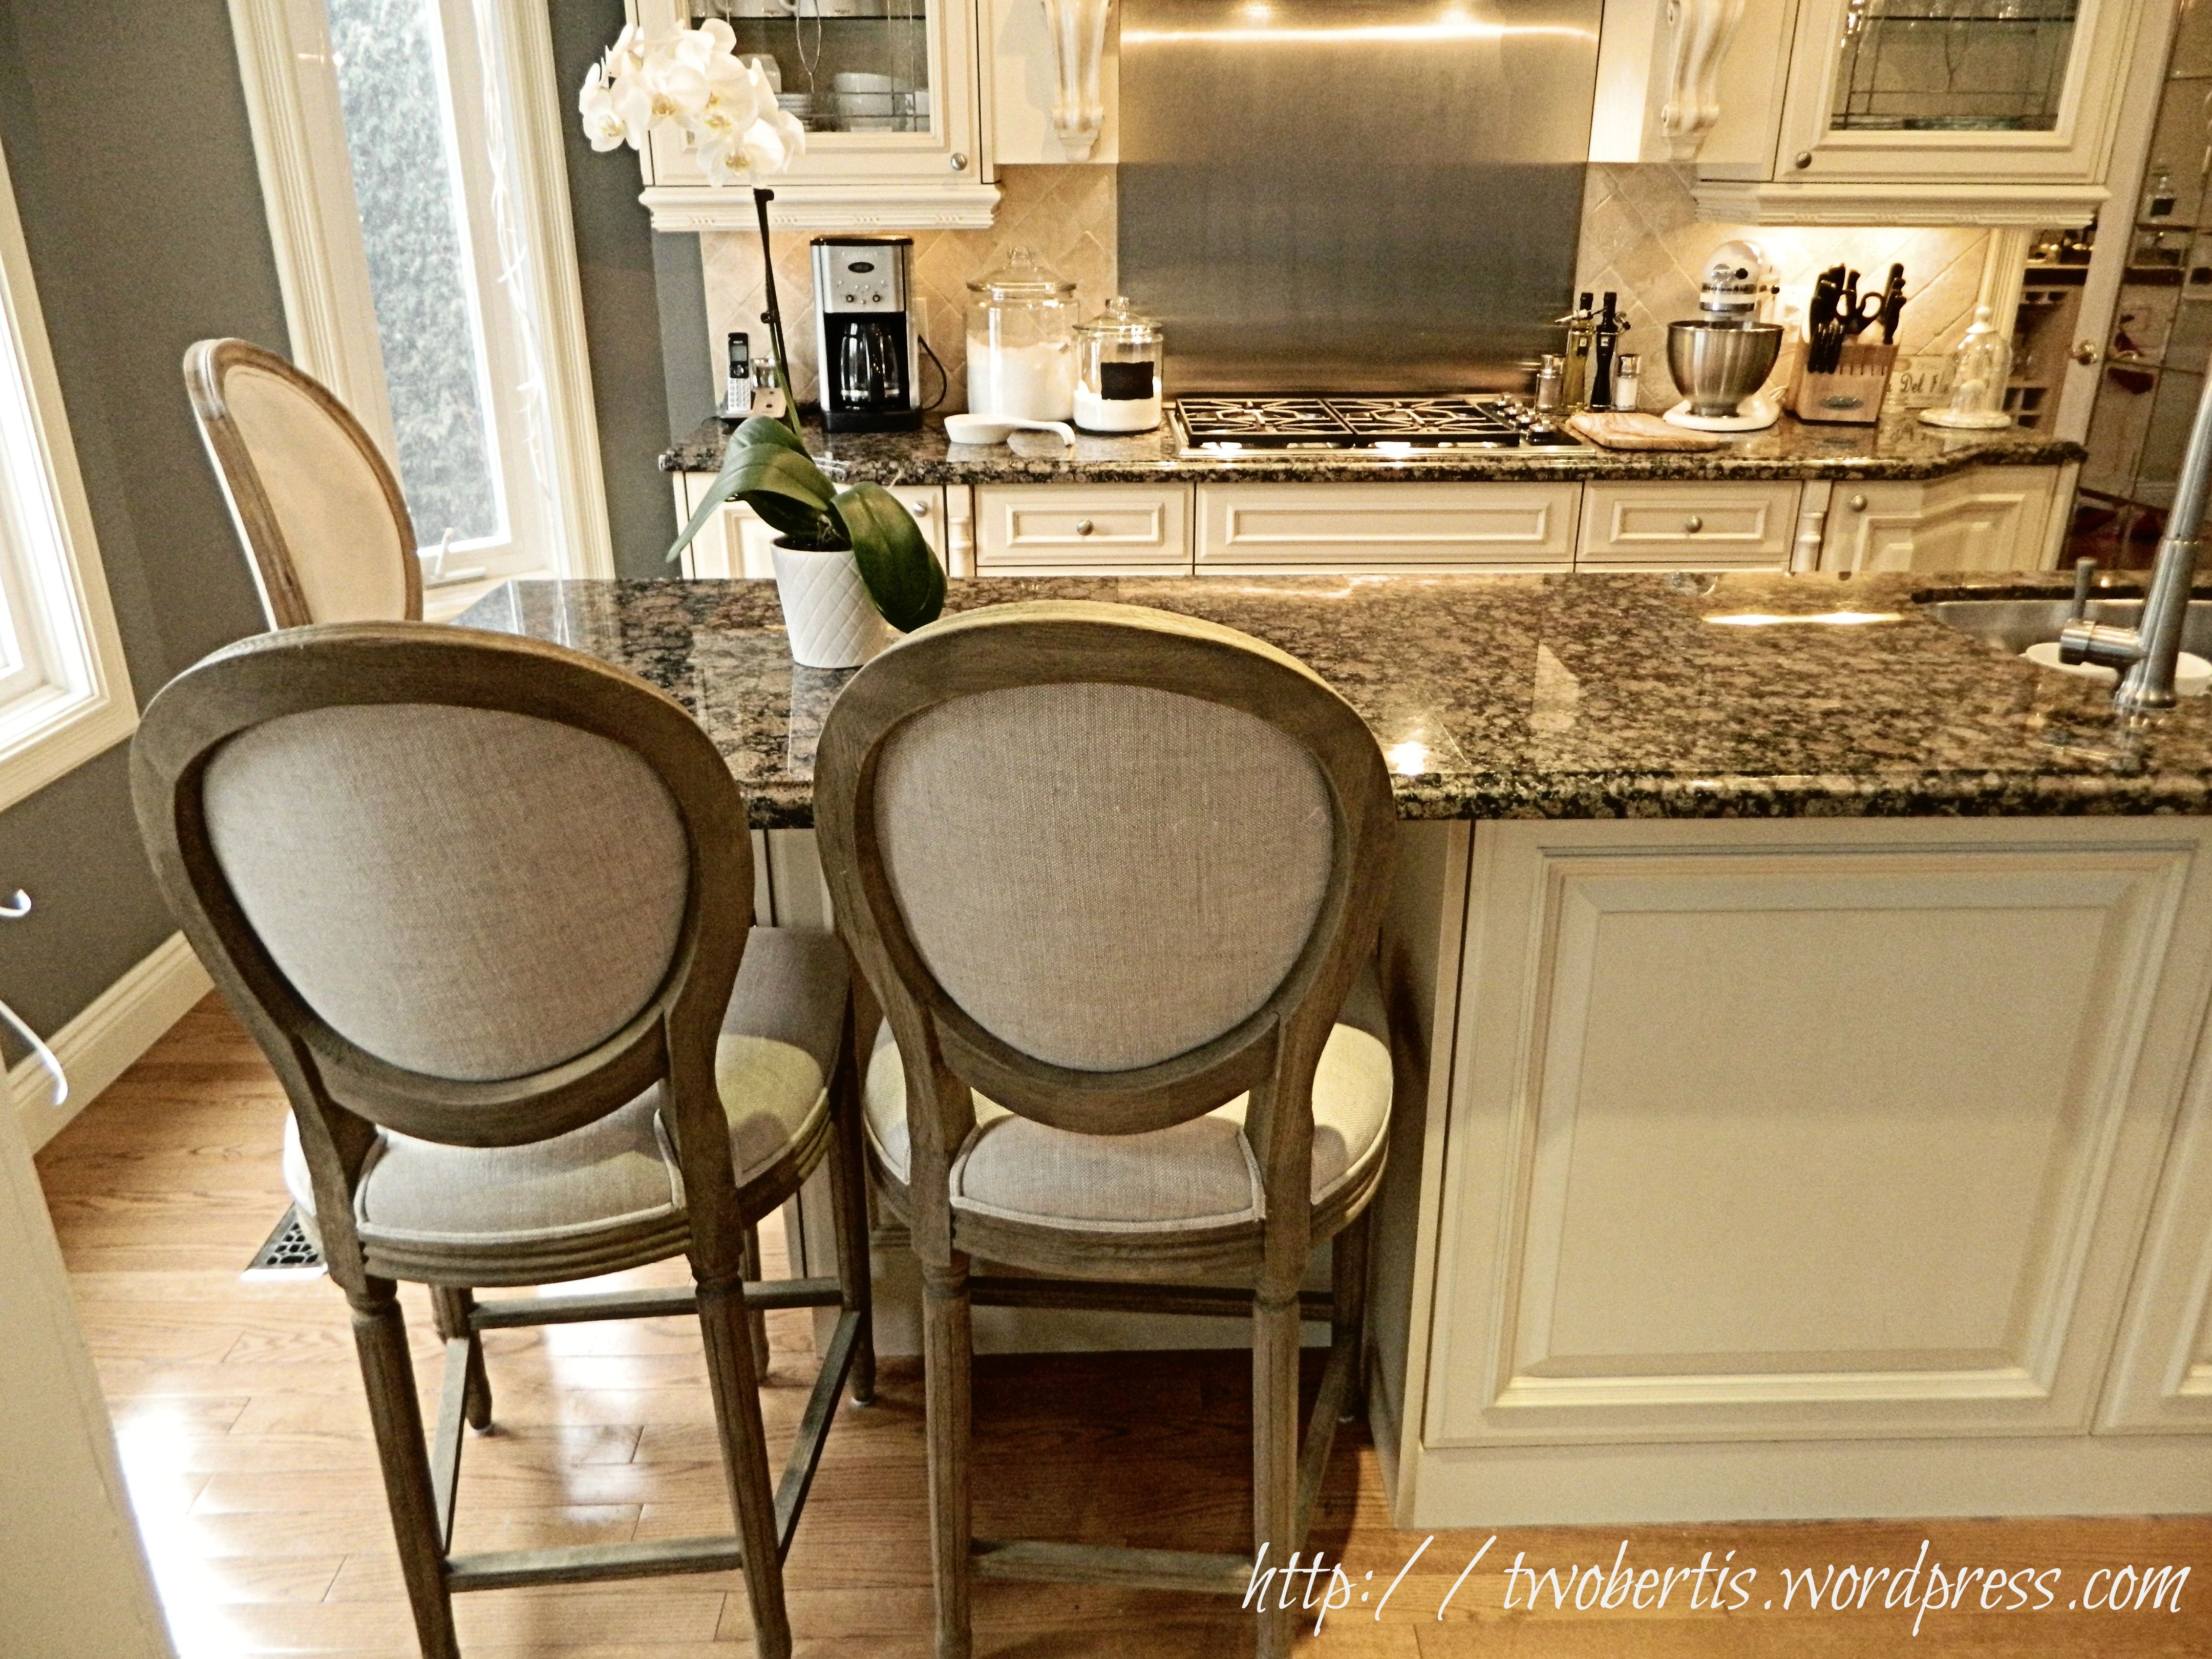 Brilliant Early Settler Furniture Google Search New Home Kitchen Gamerscity Chair Design For Home Gamerscityorg